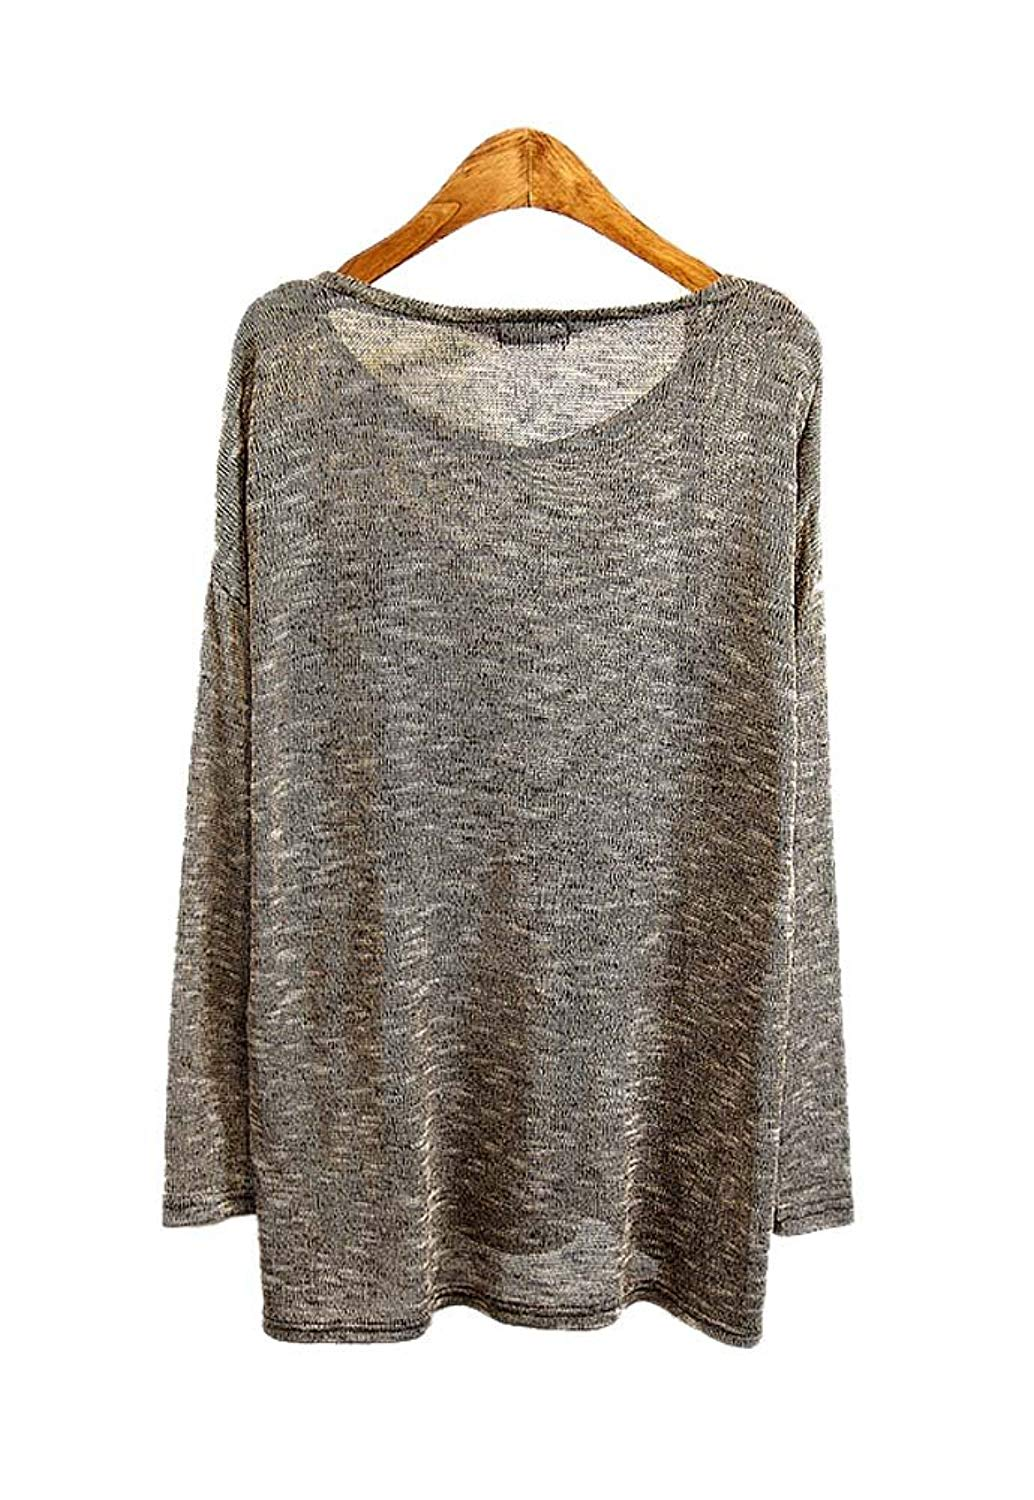 ARJOSA Womens Fashion Oversized Grey Knitted Long Sleeve Round Neck Pullovers Sweater